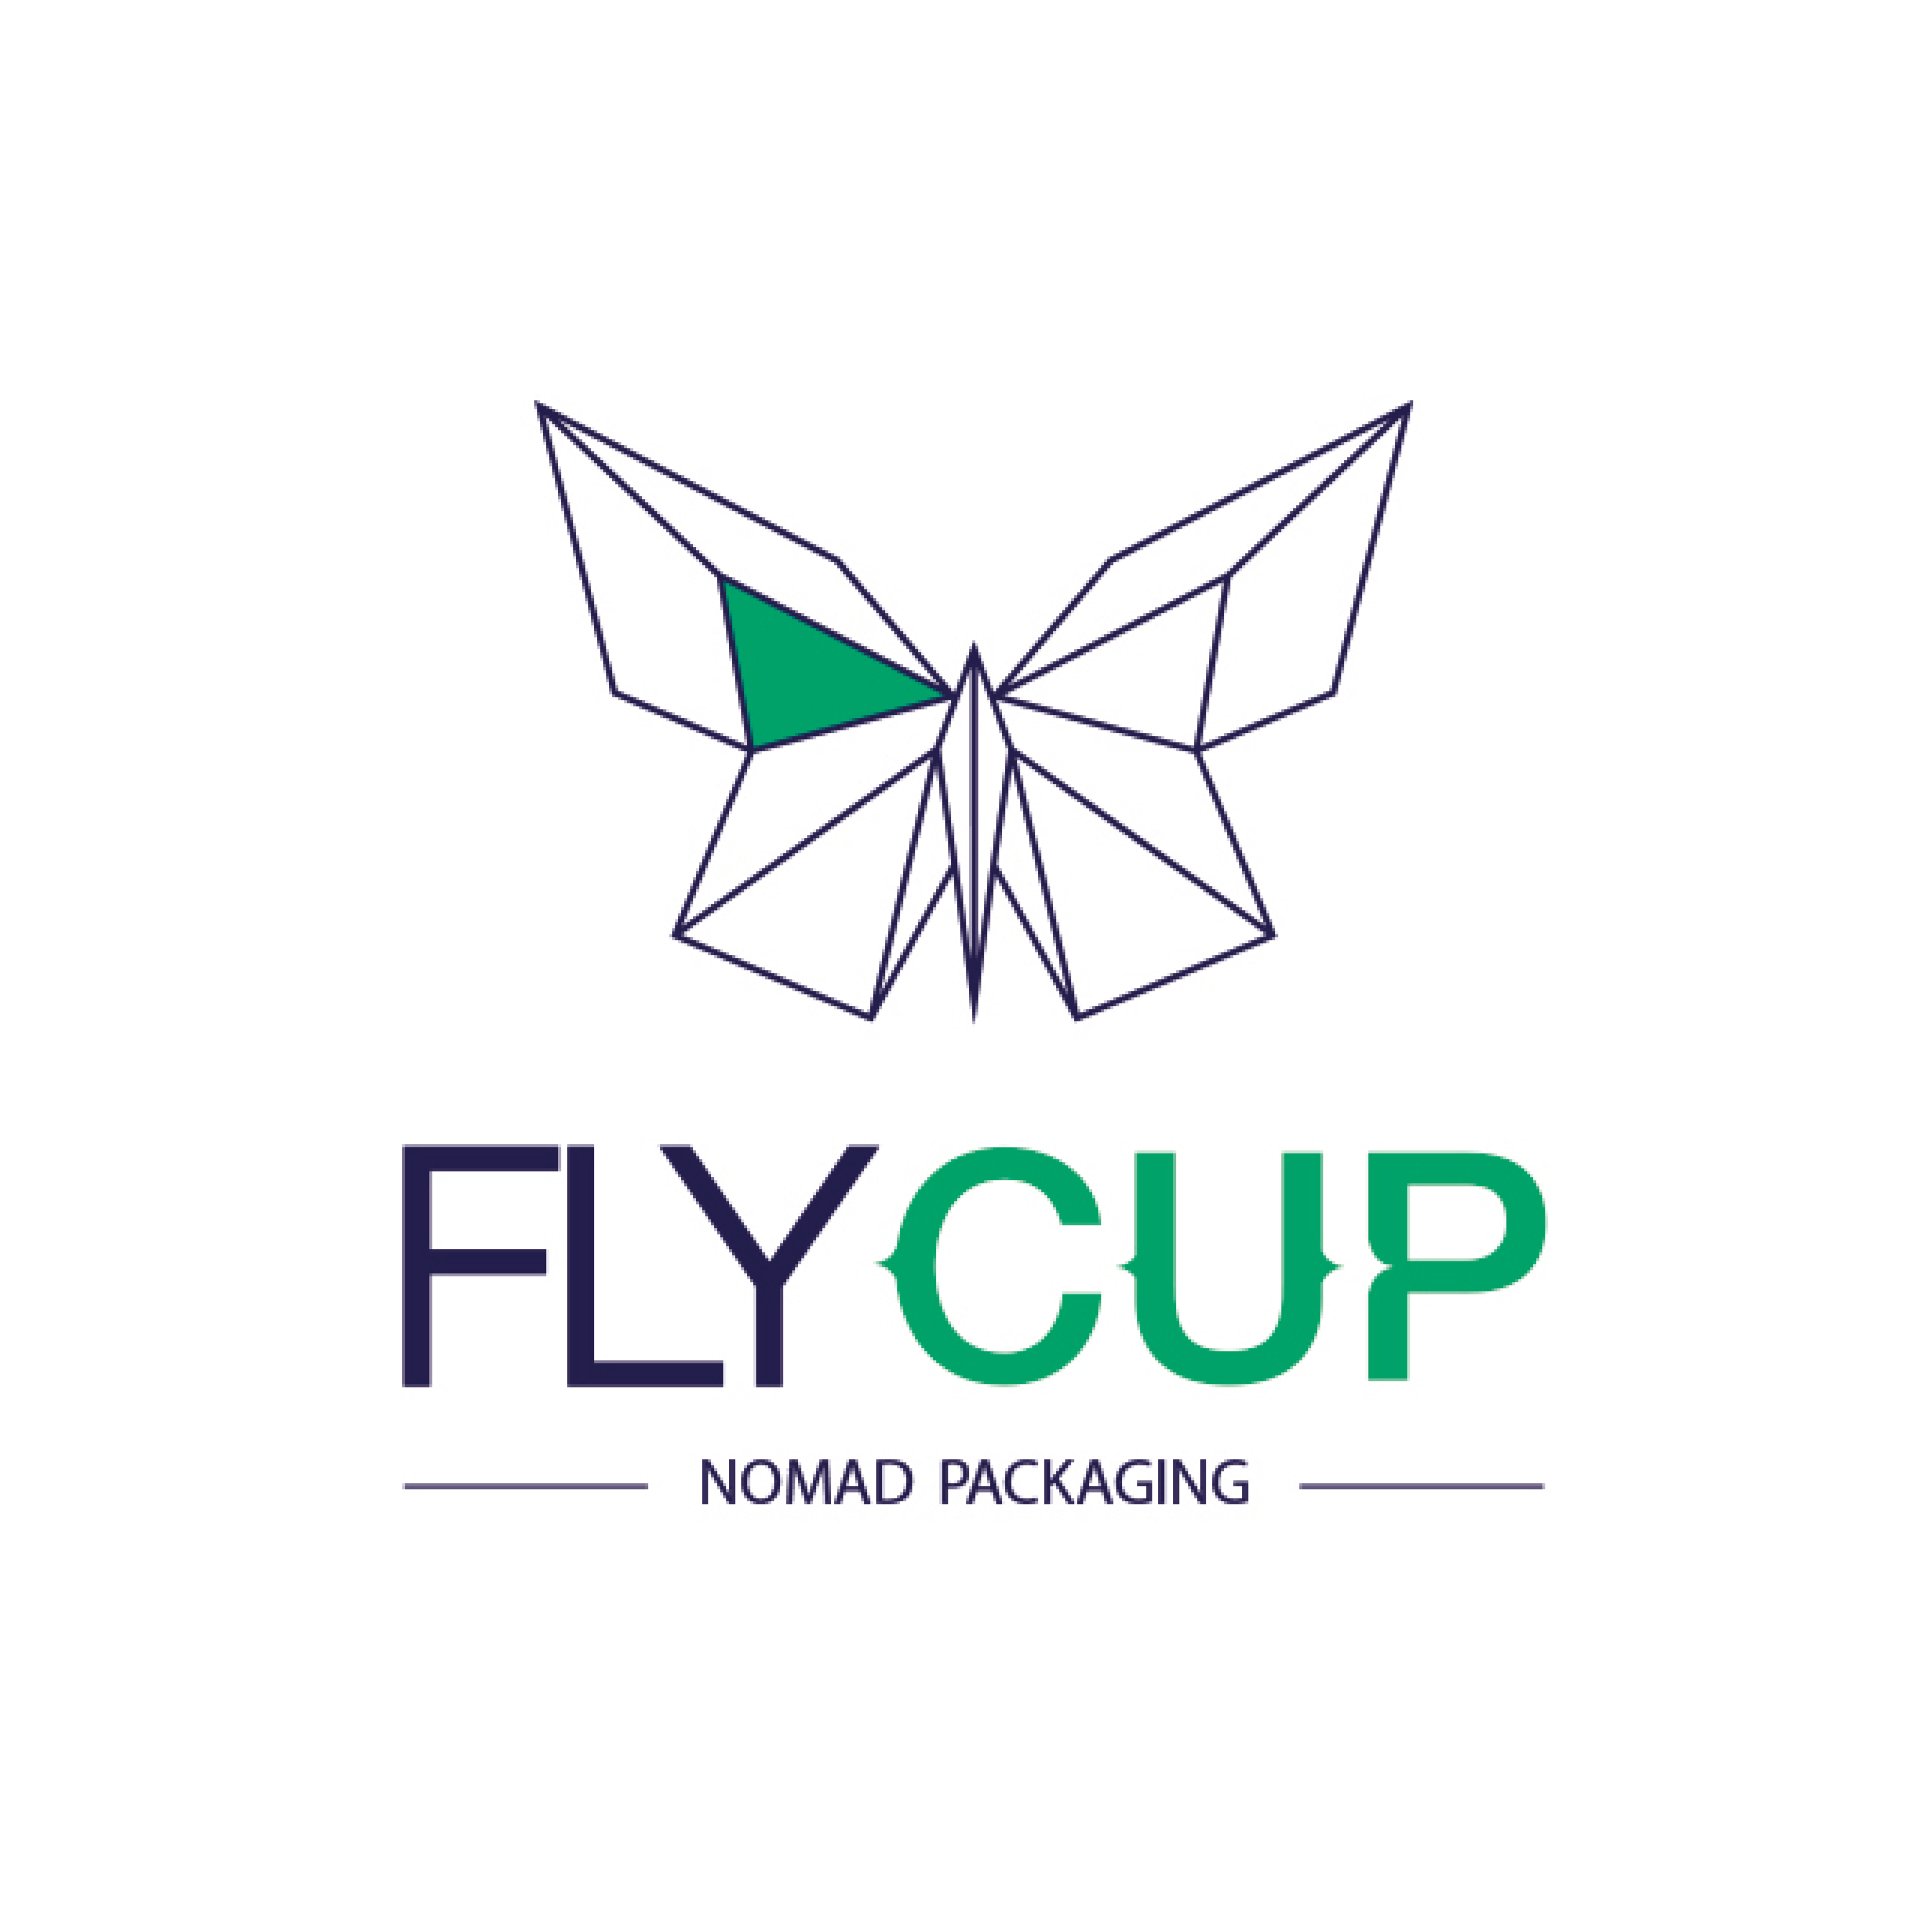 Flycup